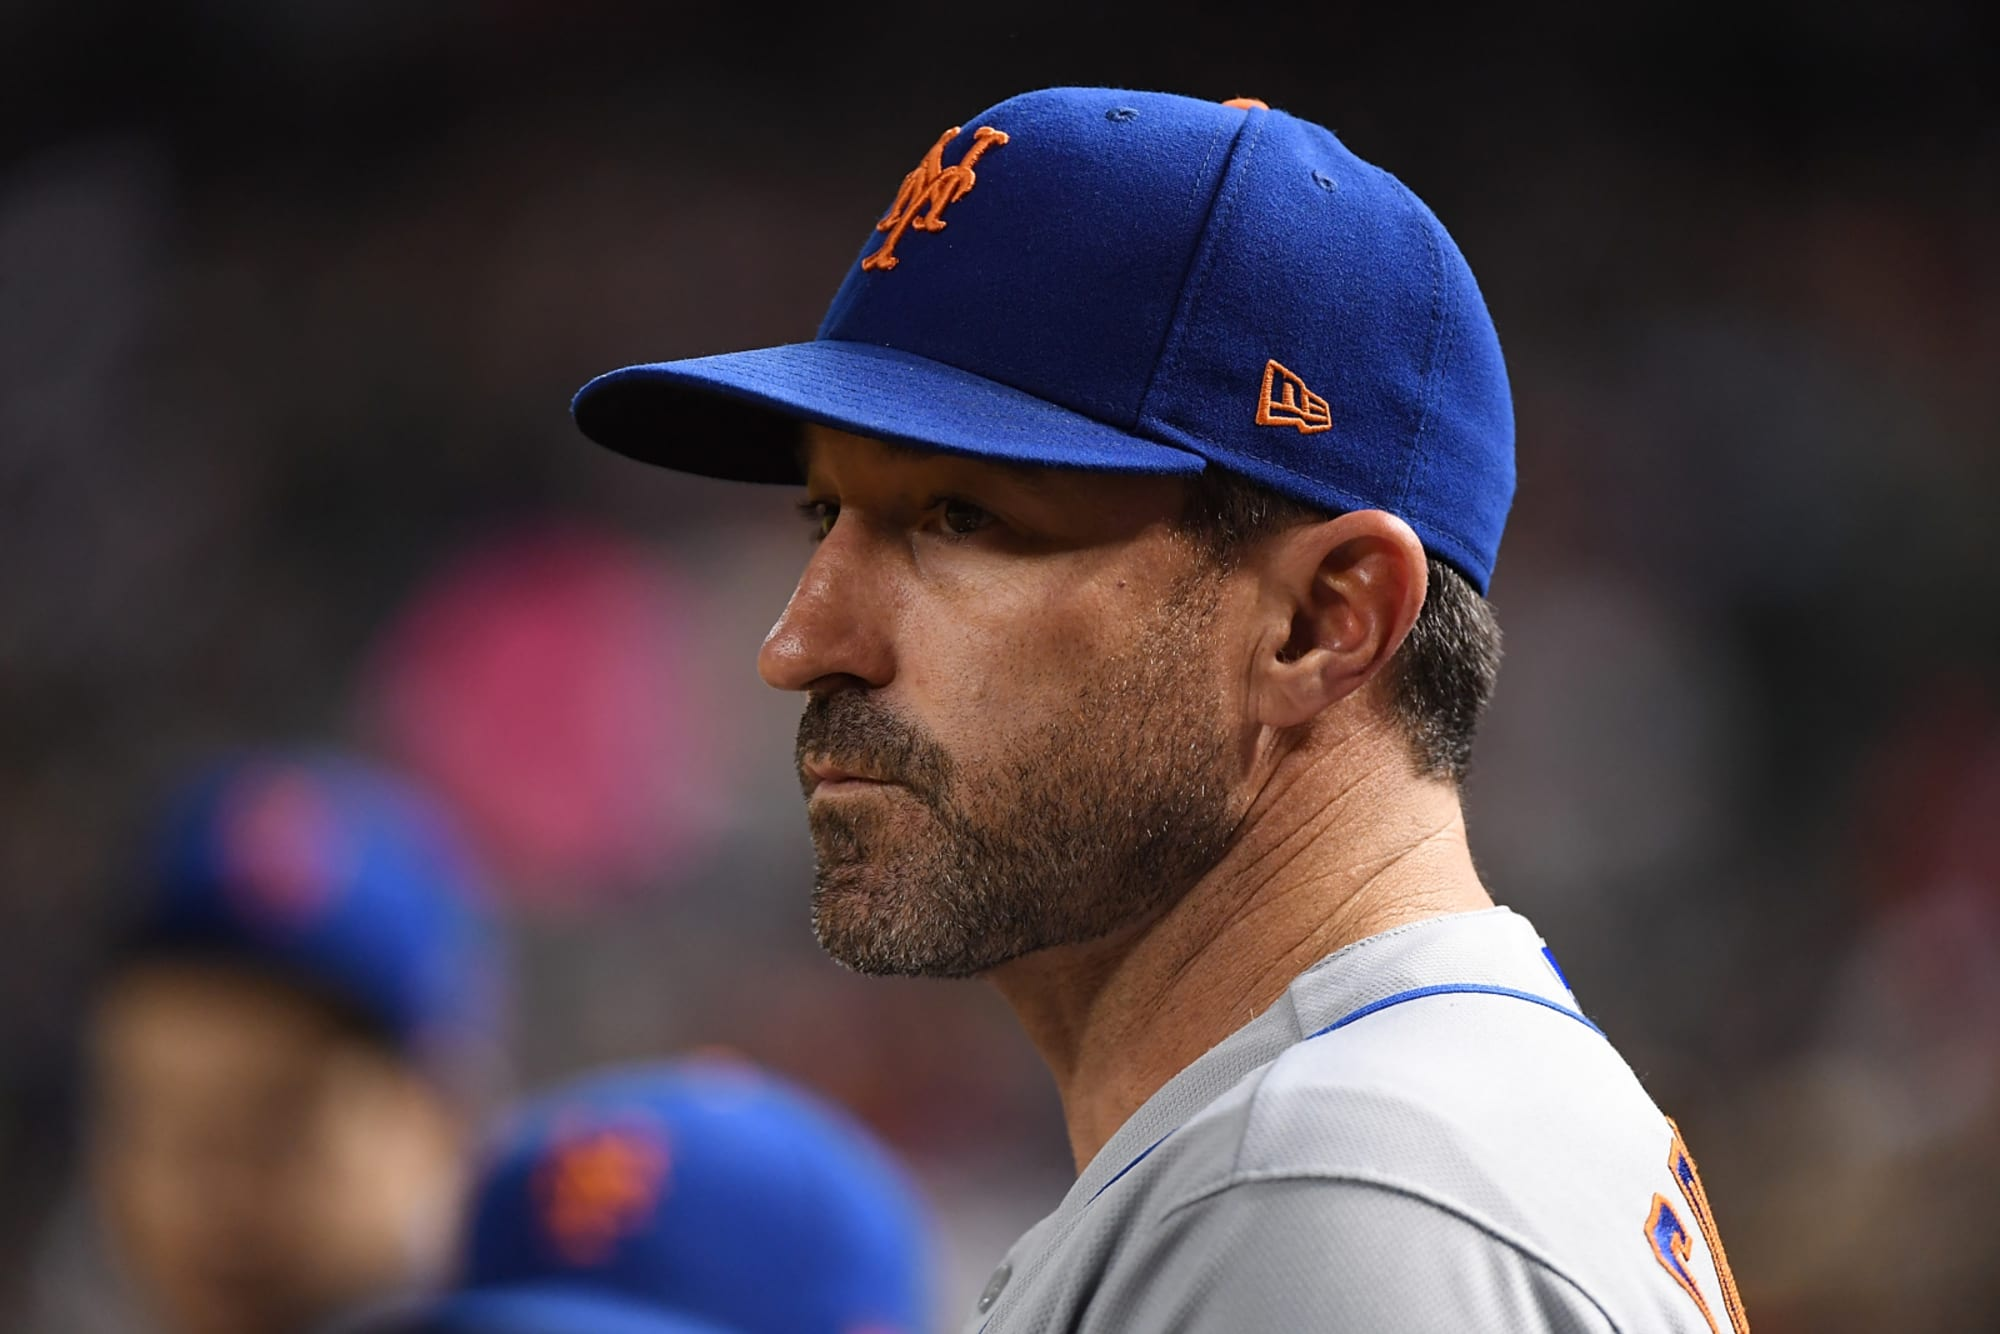 New York Mets: Calls to fire Mickey Callaway are premature